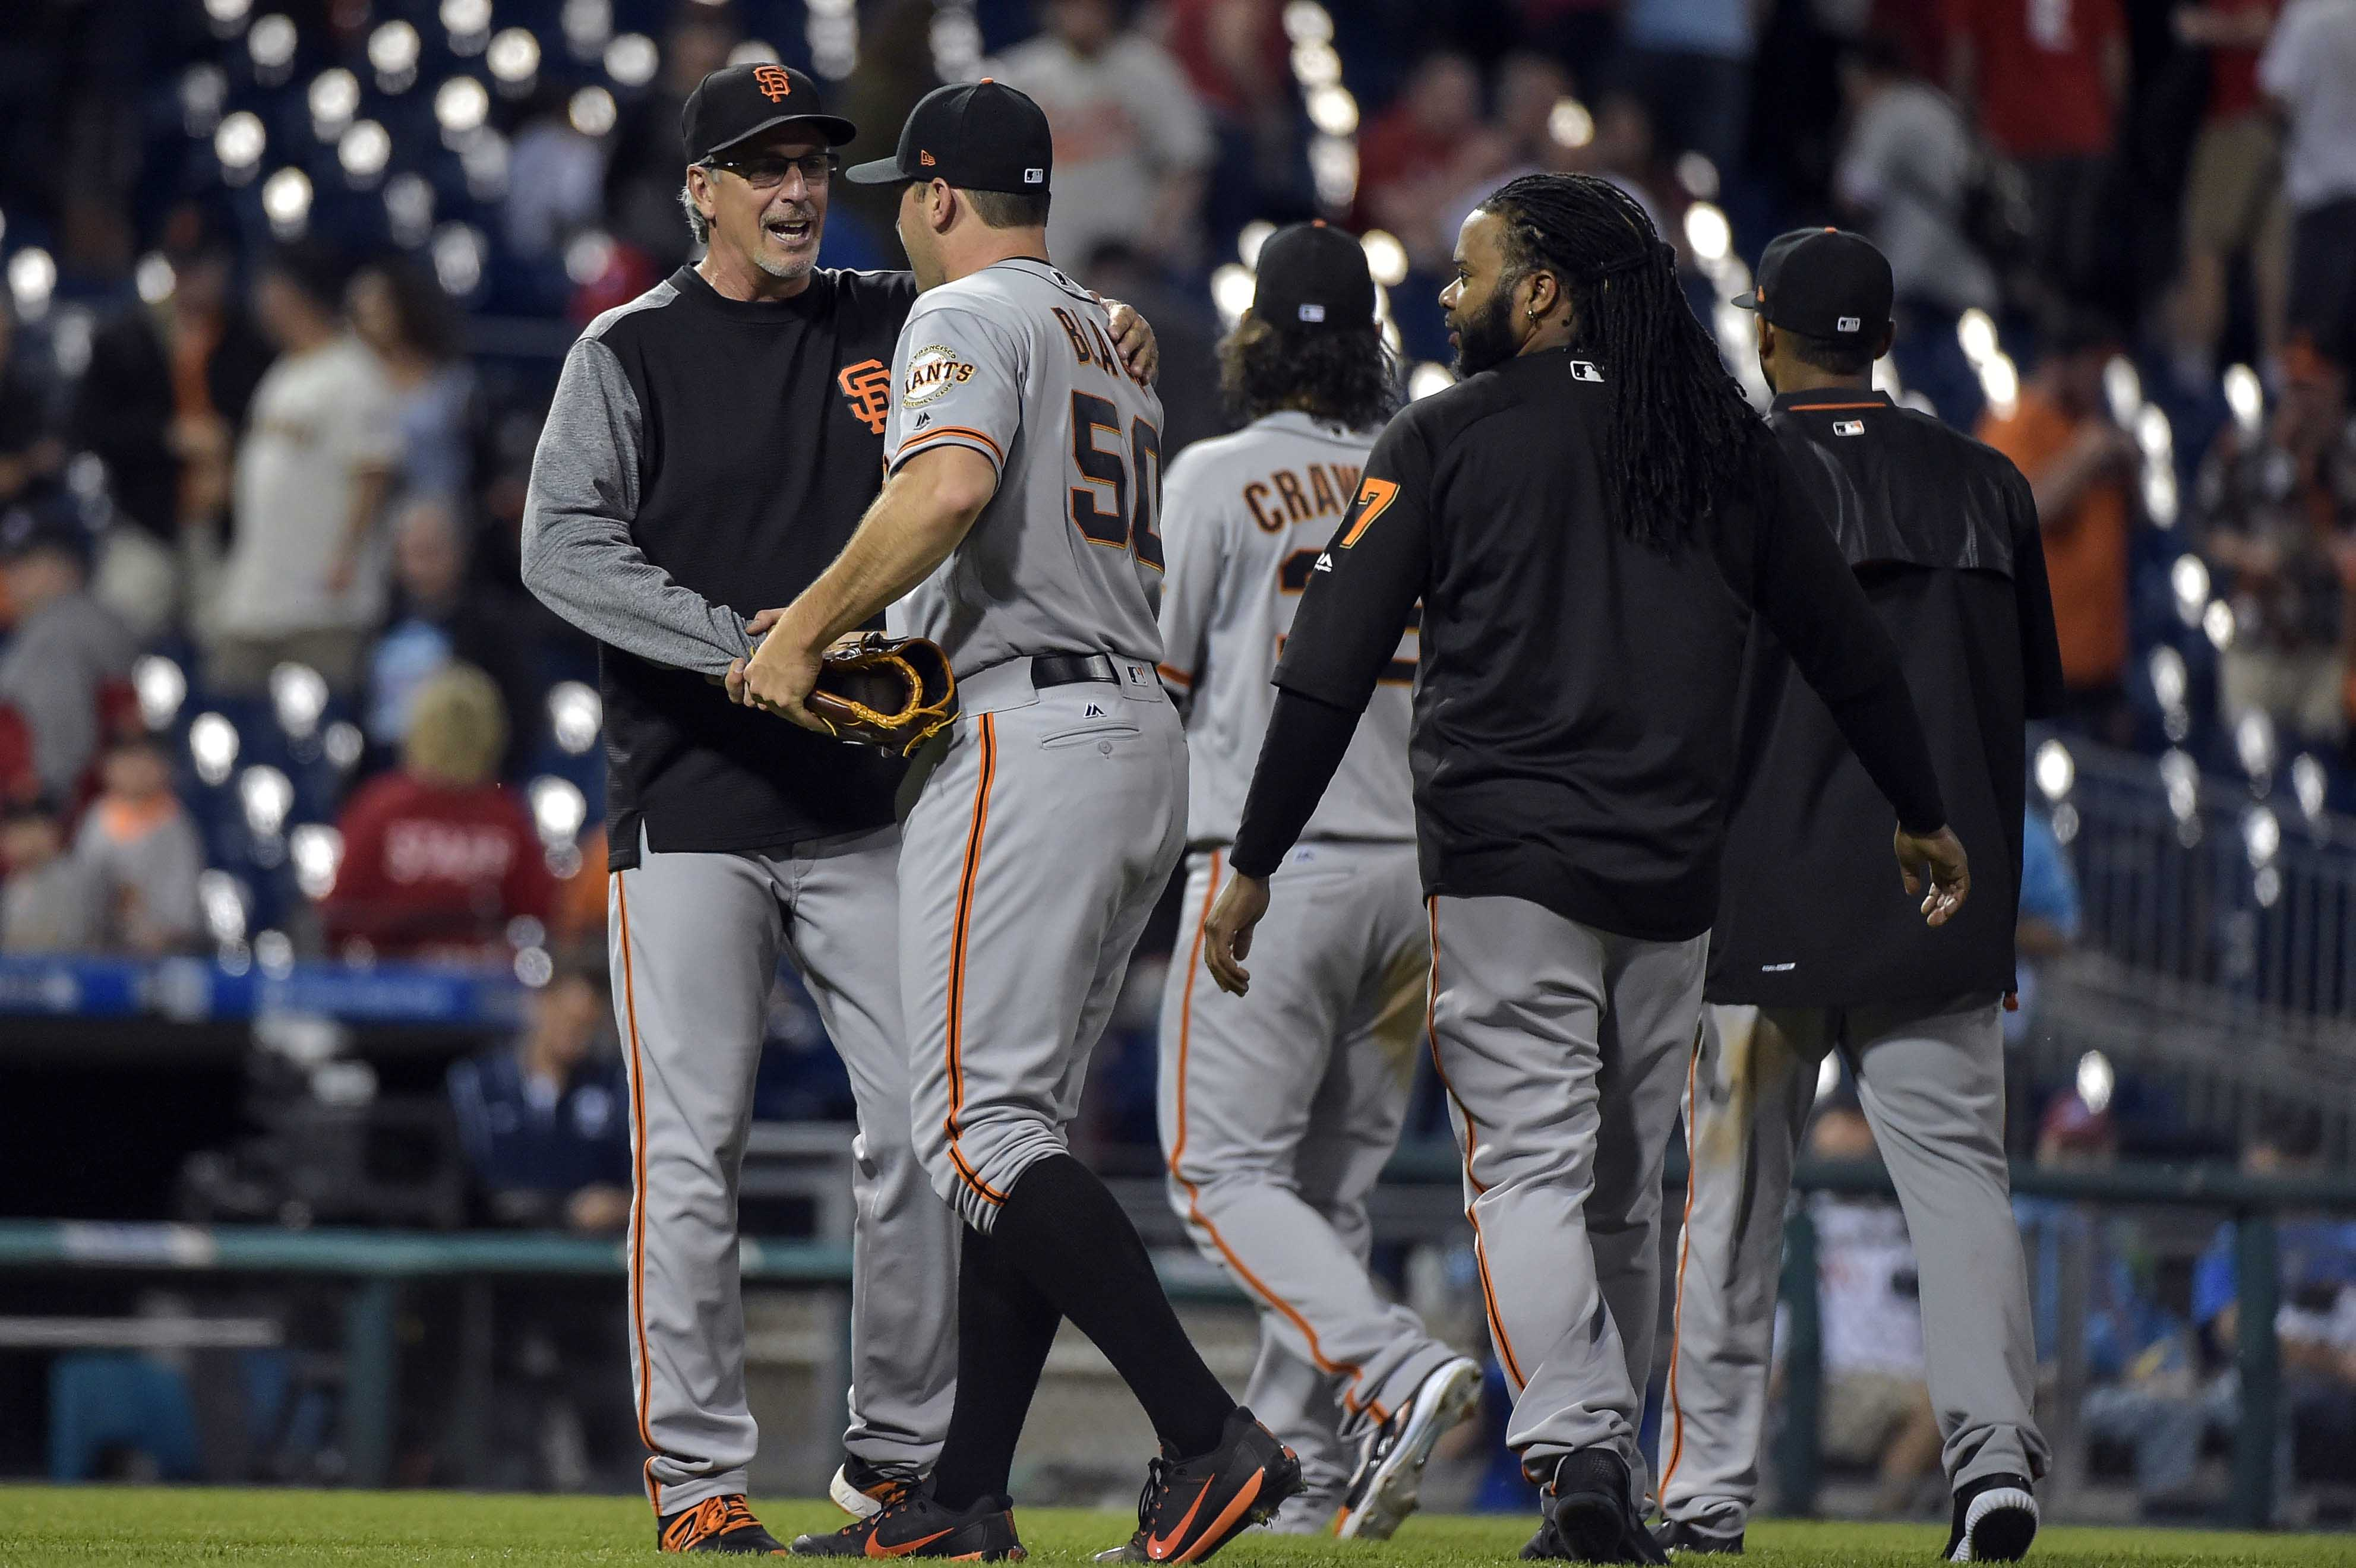 10087201-mlb-san-francisco-giants-at-philadelphia-phillies